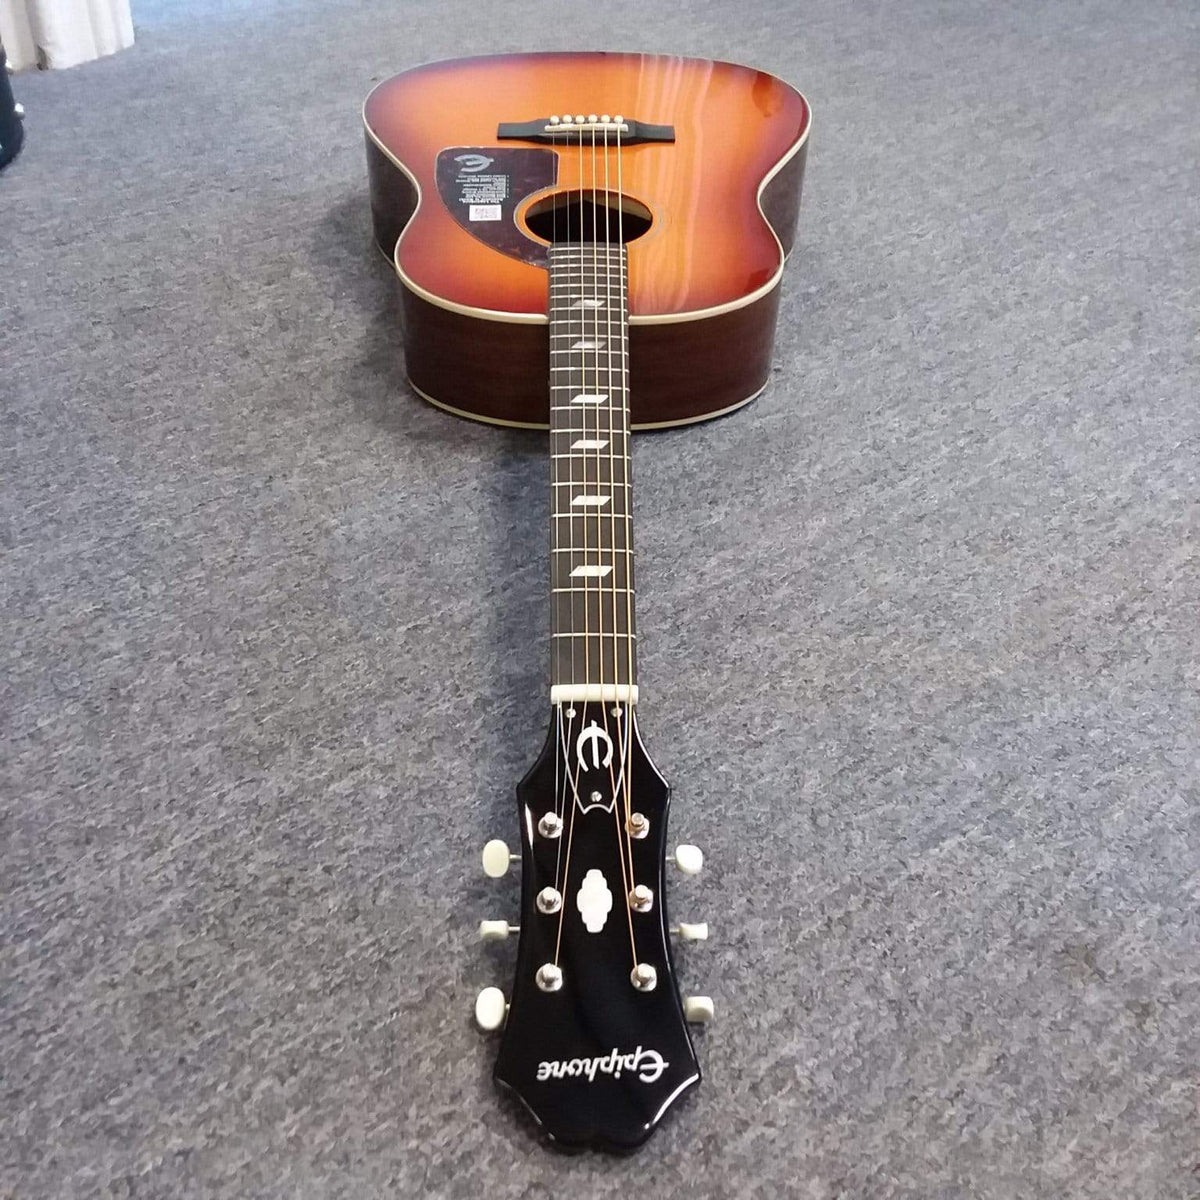 Epiphone GUITARS - ACOUSTIC GUITARS Epiphone Inspired by 1964 Texan FT-79  Acoustic-Electric Guitar